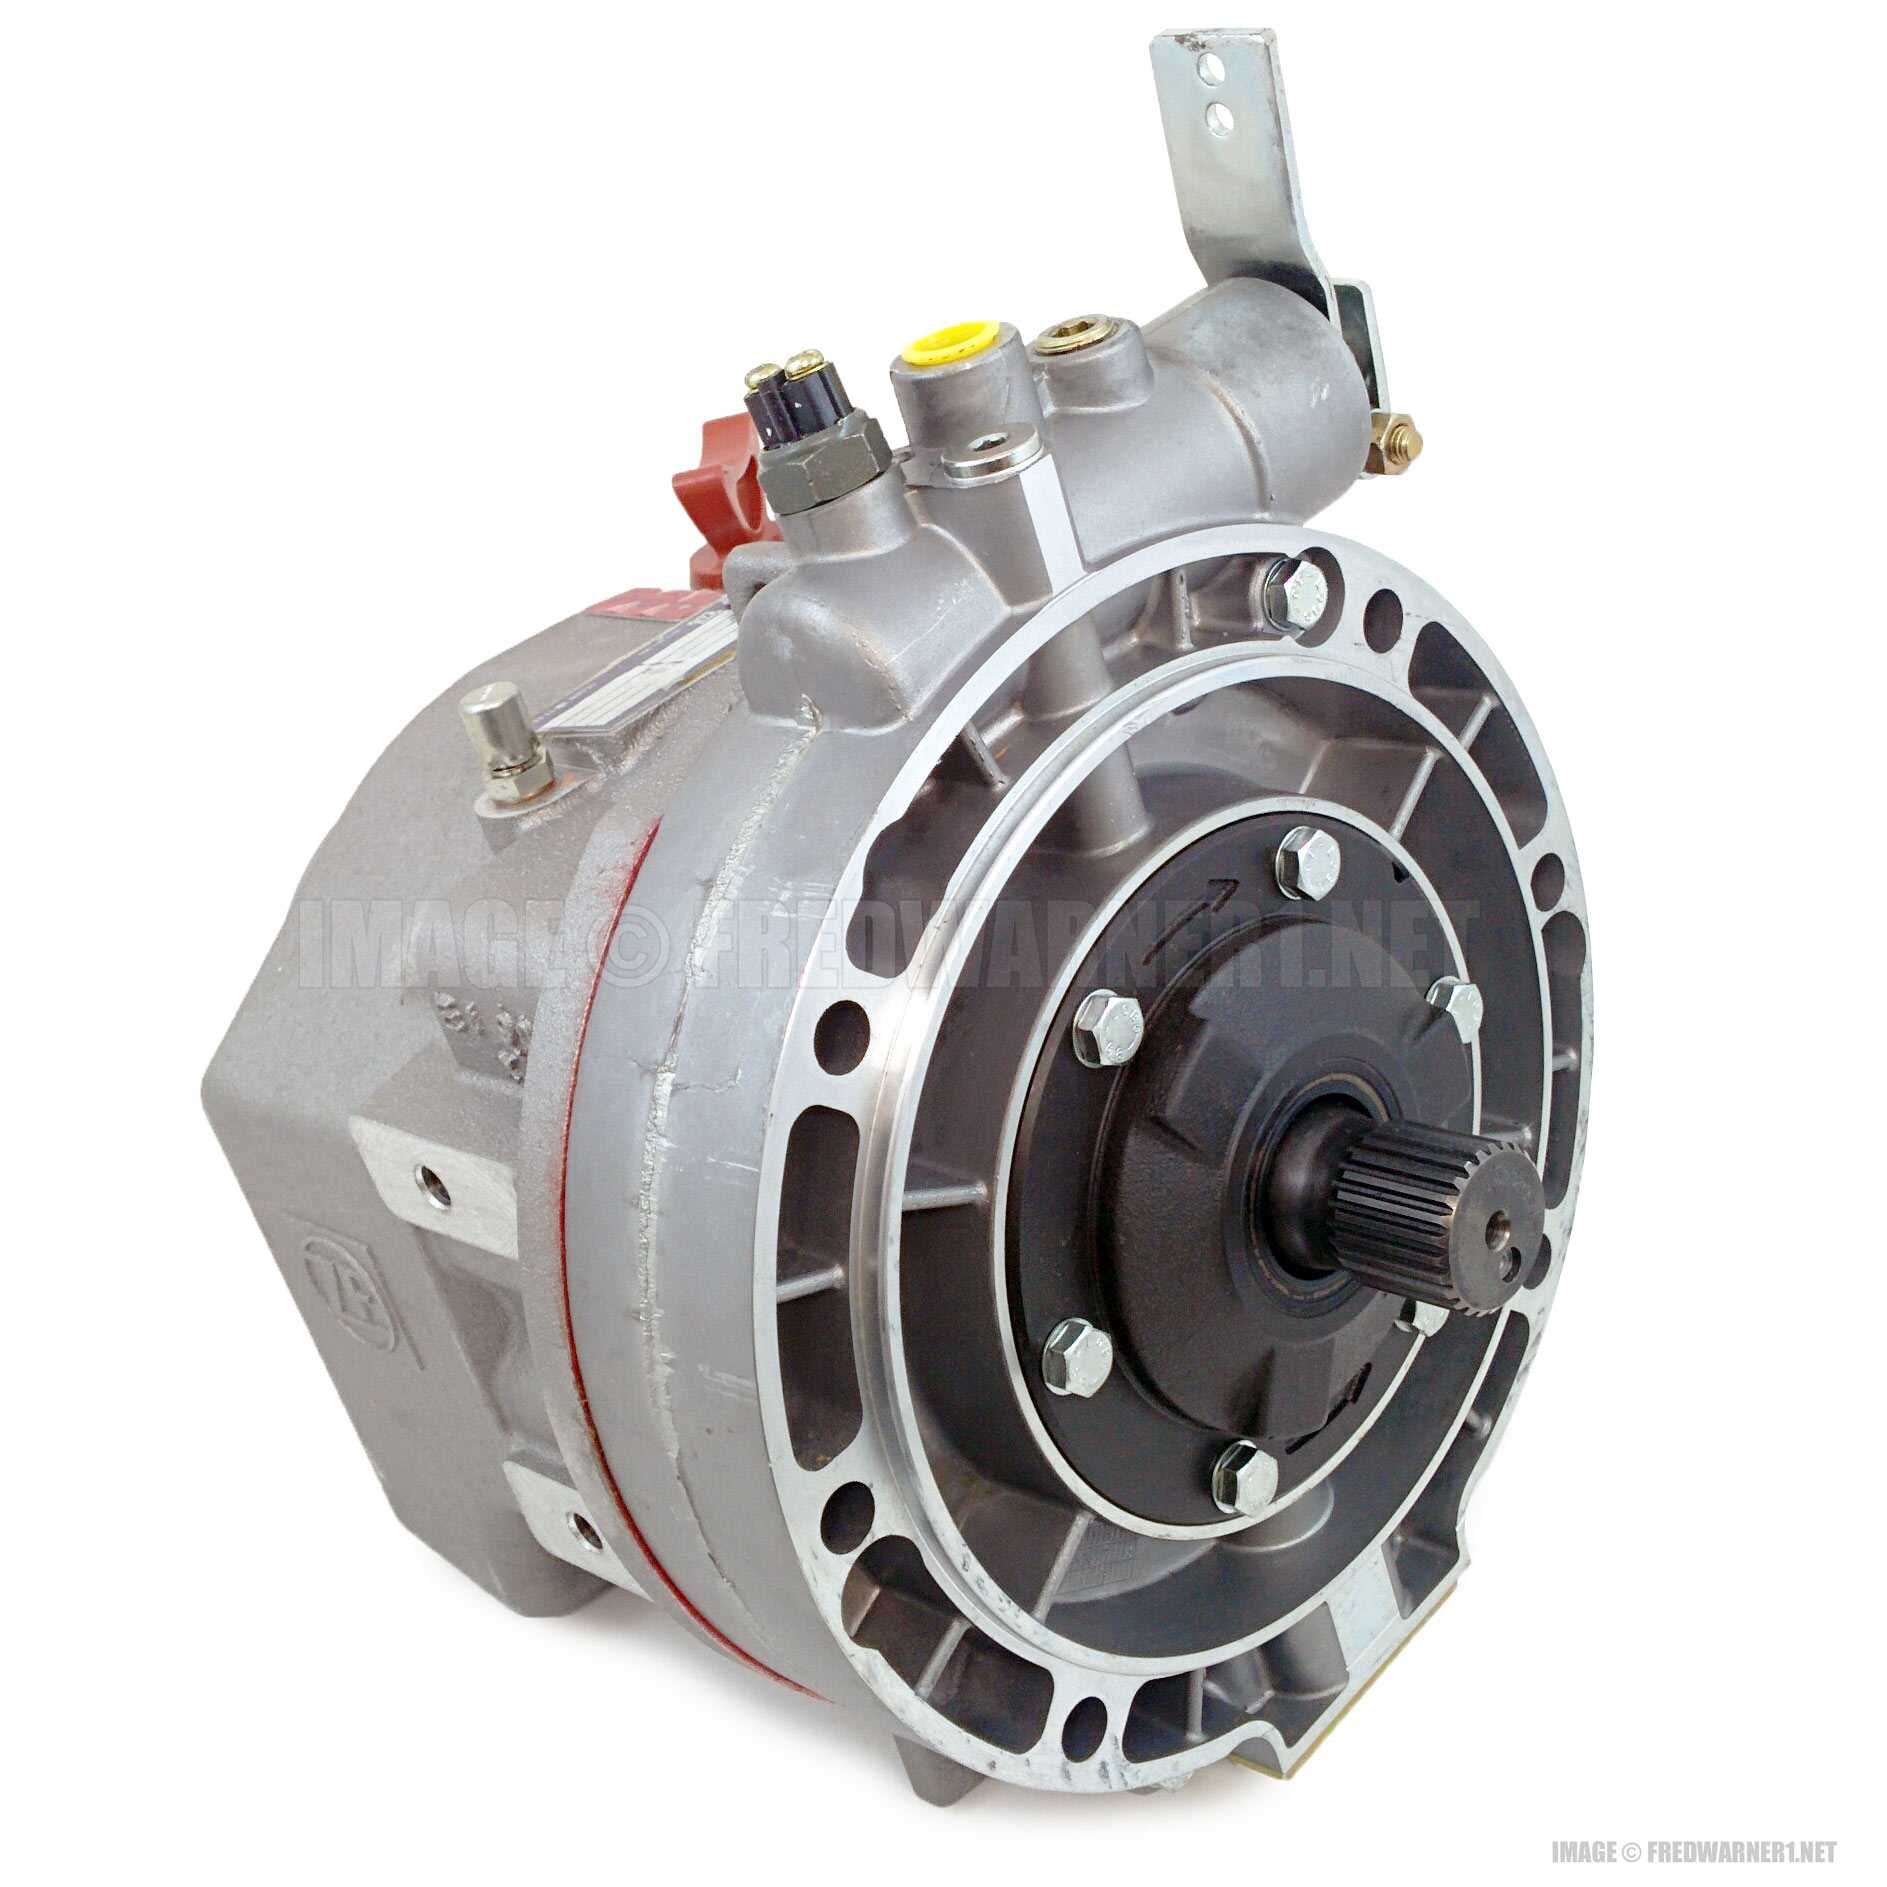 ZF 45C 45CW 1:1 Marine Boat Transmission Gearbox Hurth HSW450D 3311000001  002